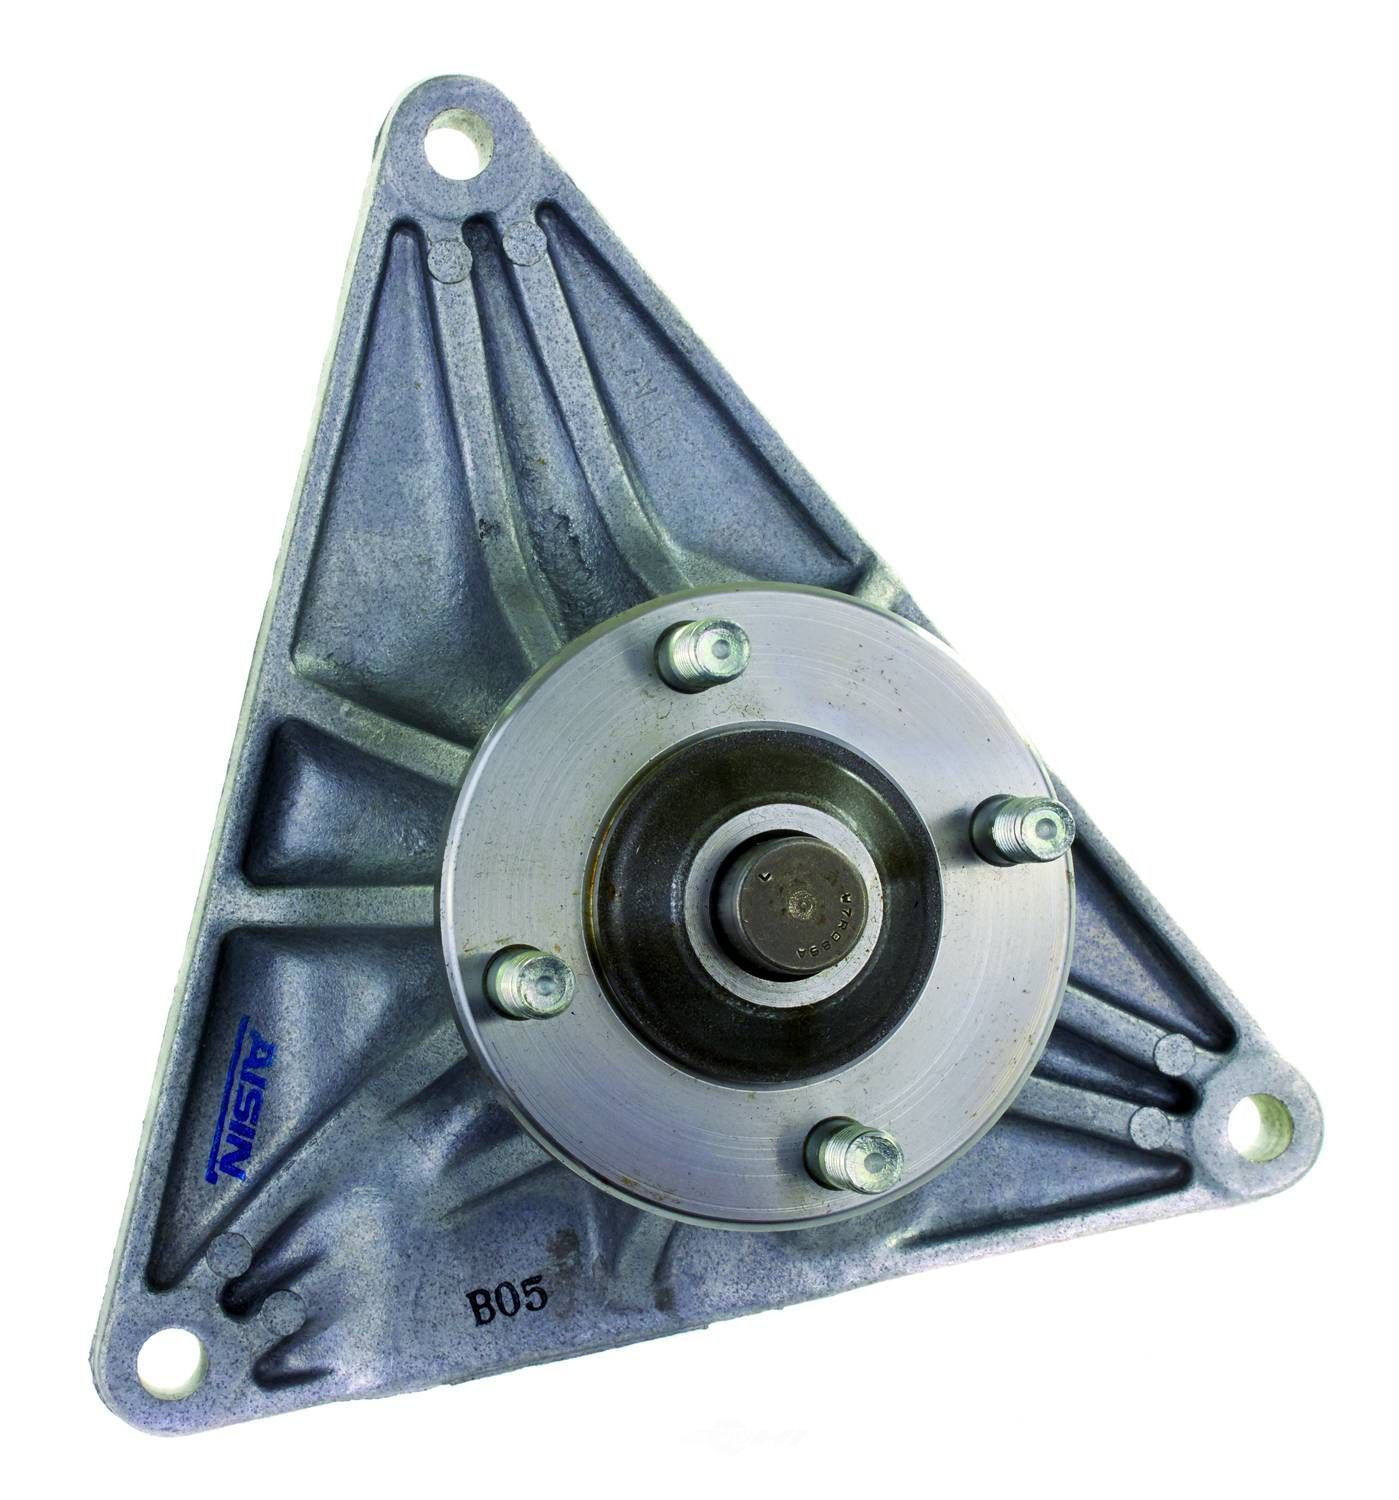 AISIN WORLD CORP. OF AMERICA - Engine Cooling Fan Pulley Bracket - AIS FBG-001